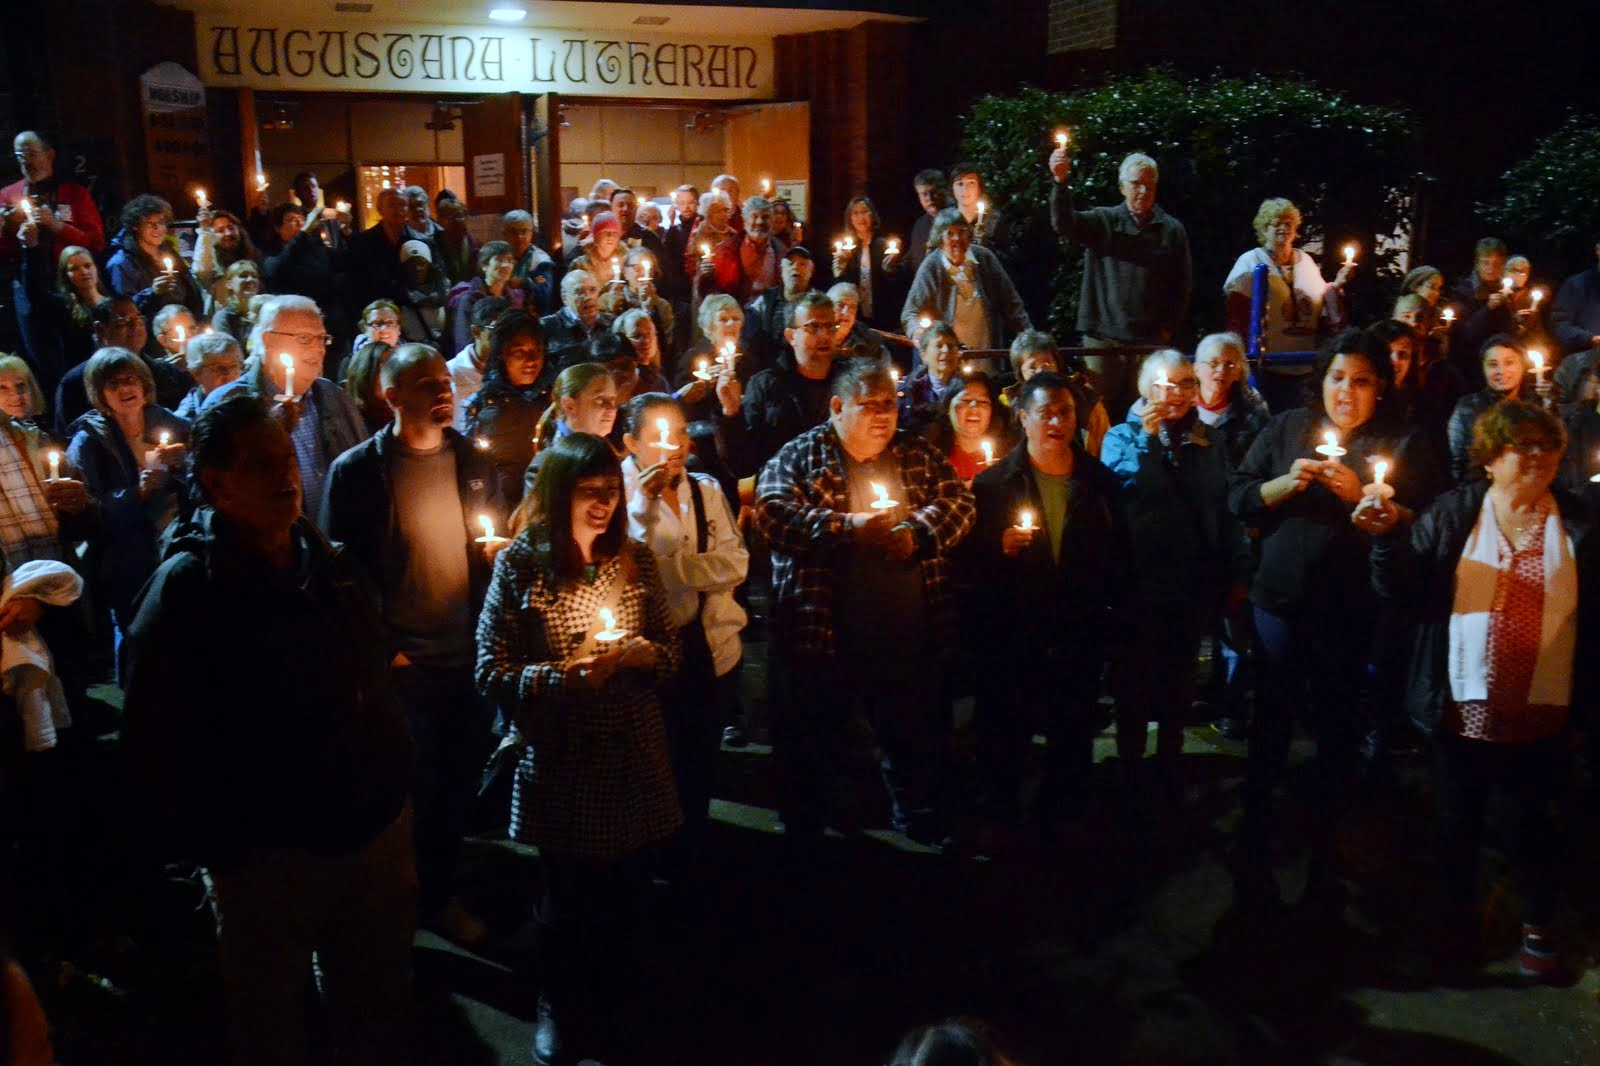 An IMIrJ vigil in support of immigrant rights.